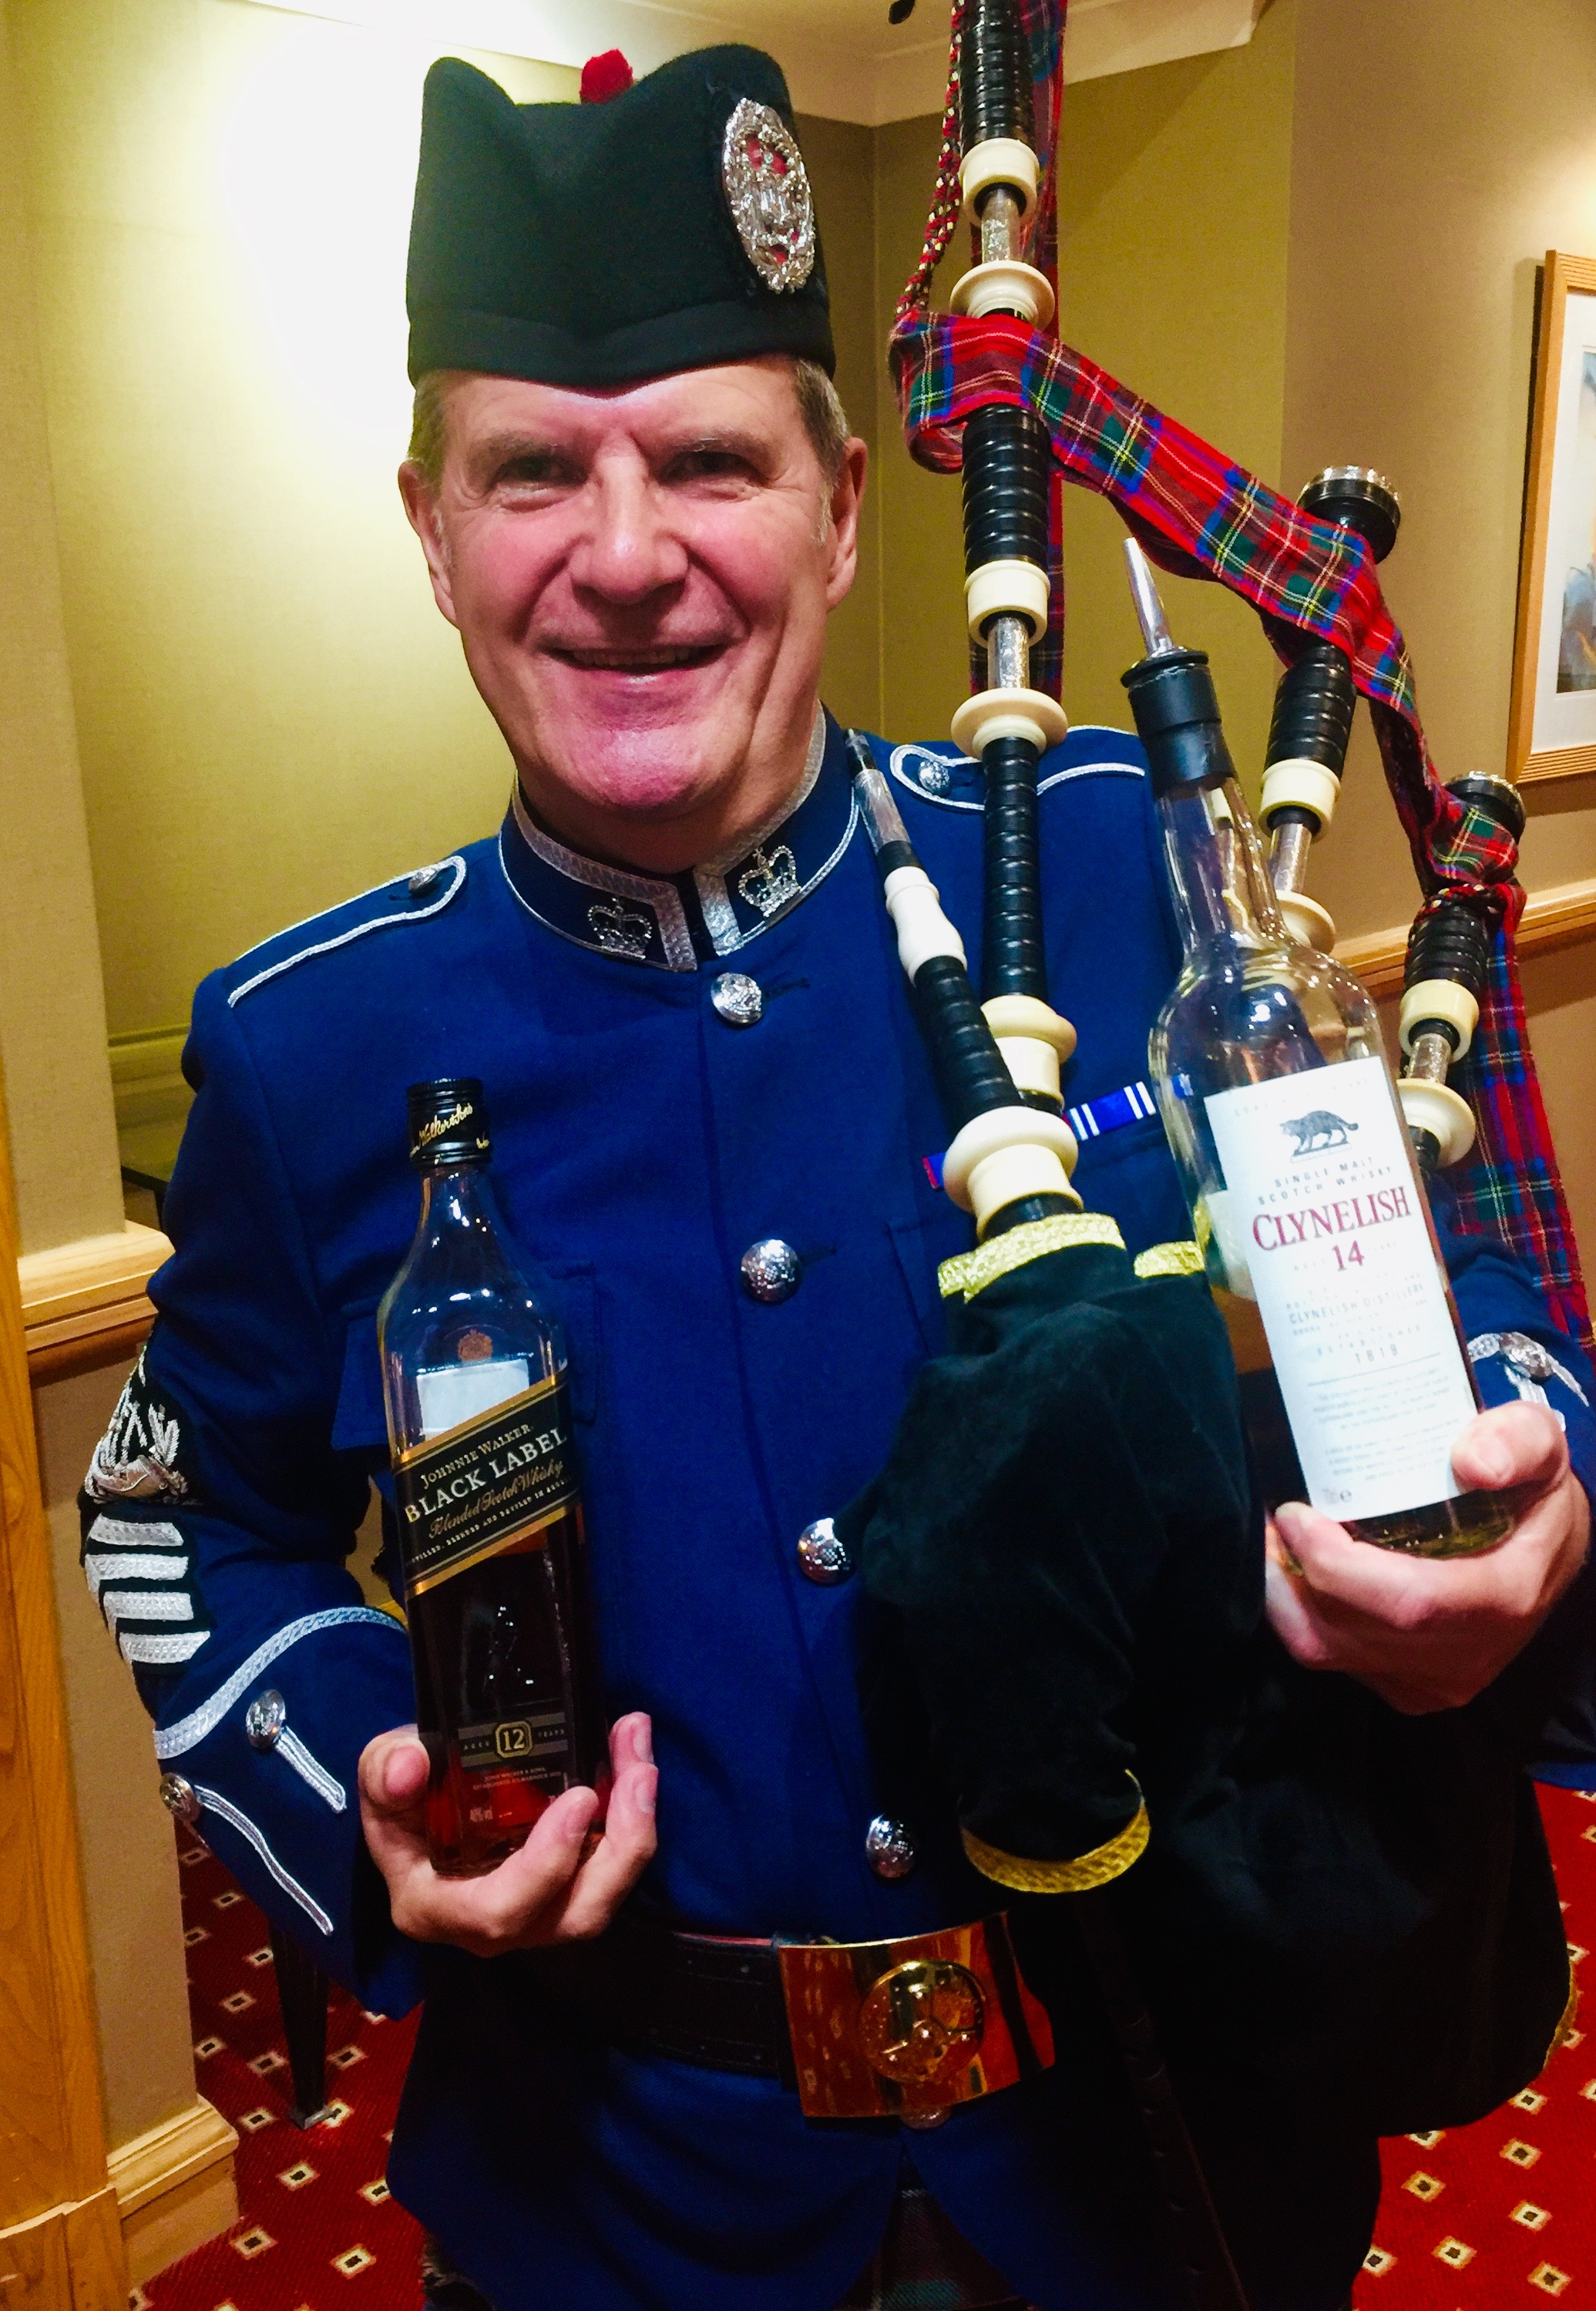 It's a dangerous game being the piper at a whiskey tasting. Just as well I have strong will power!